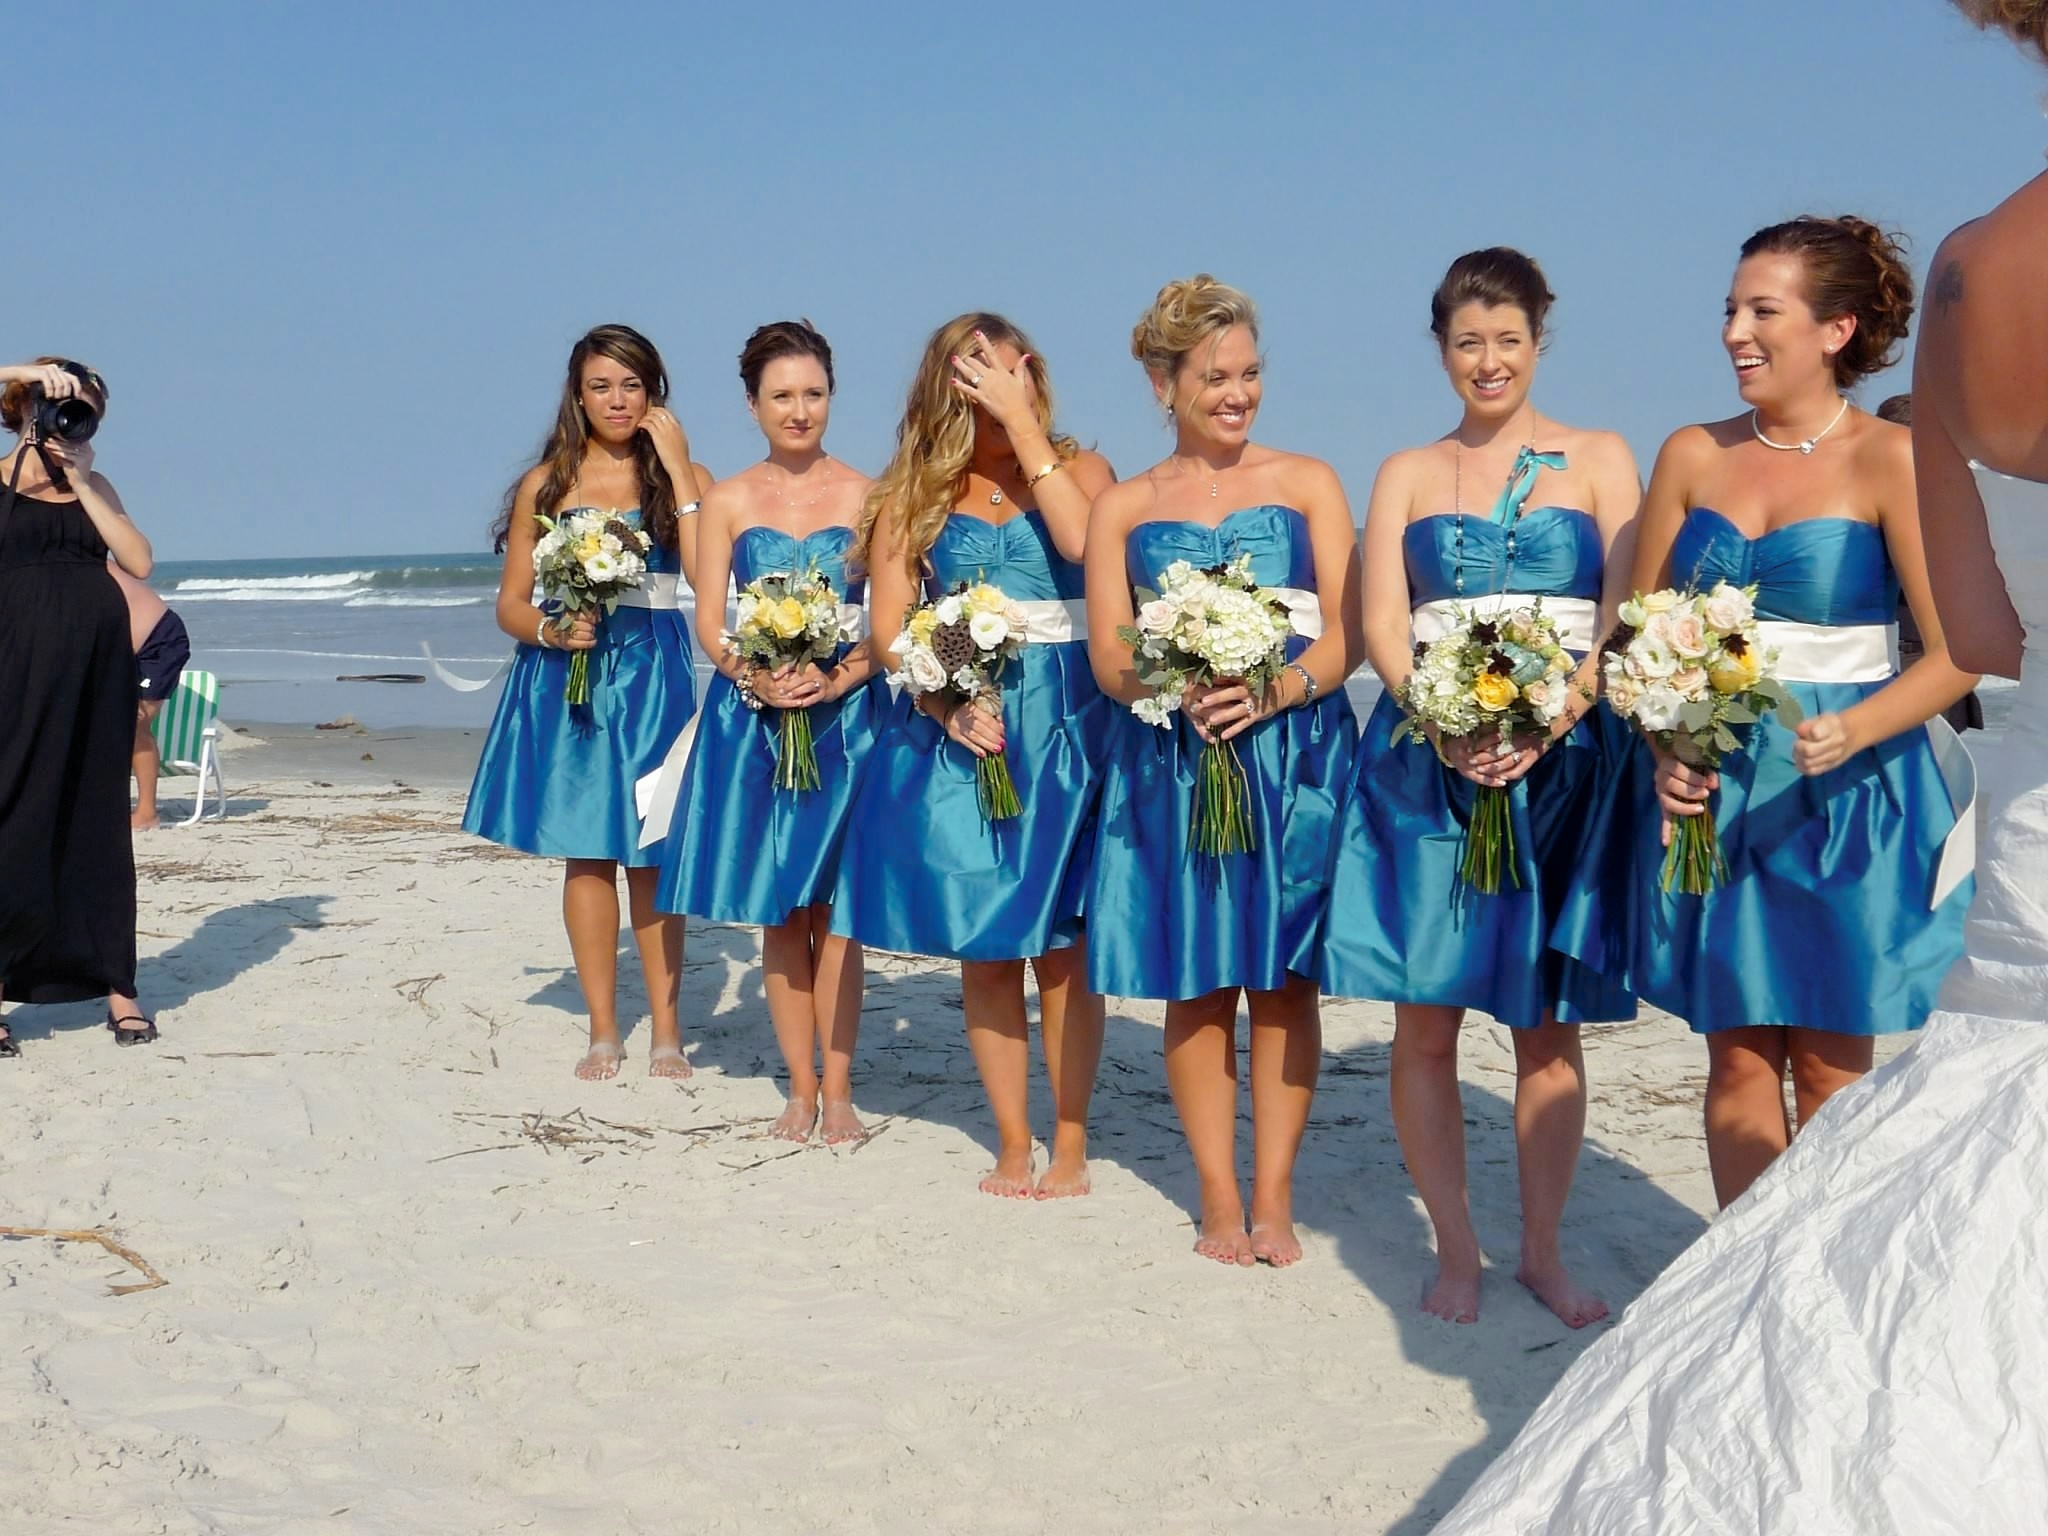 Brandastyle Web Blog » DESTINATION WEDDING SEMI-FORMAL BEACH STYLE